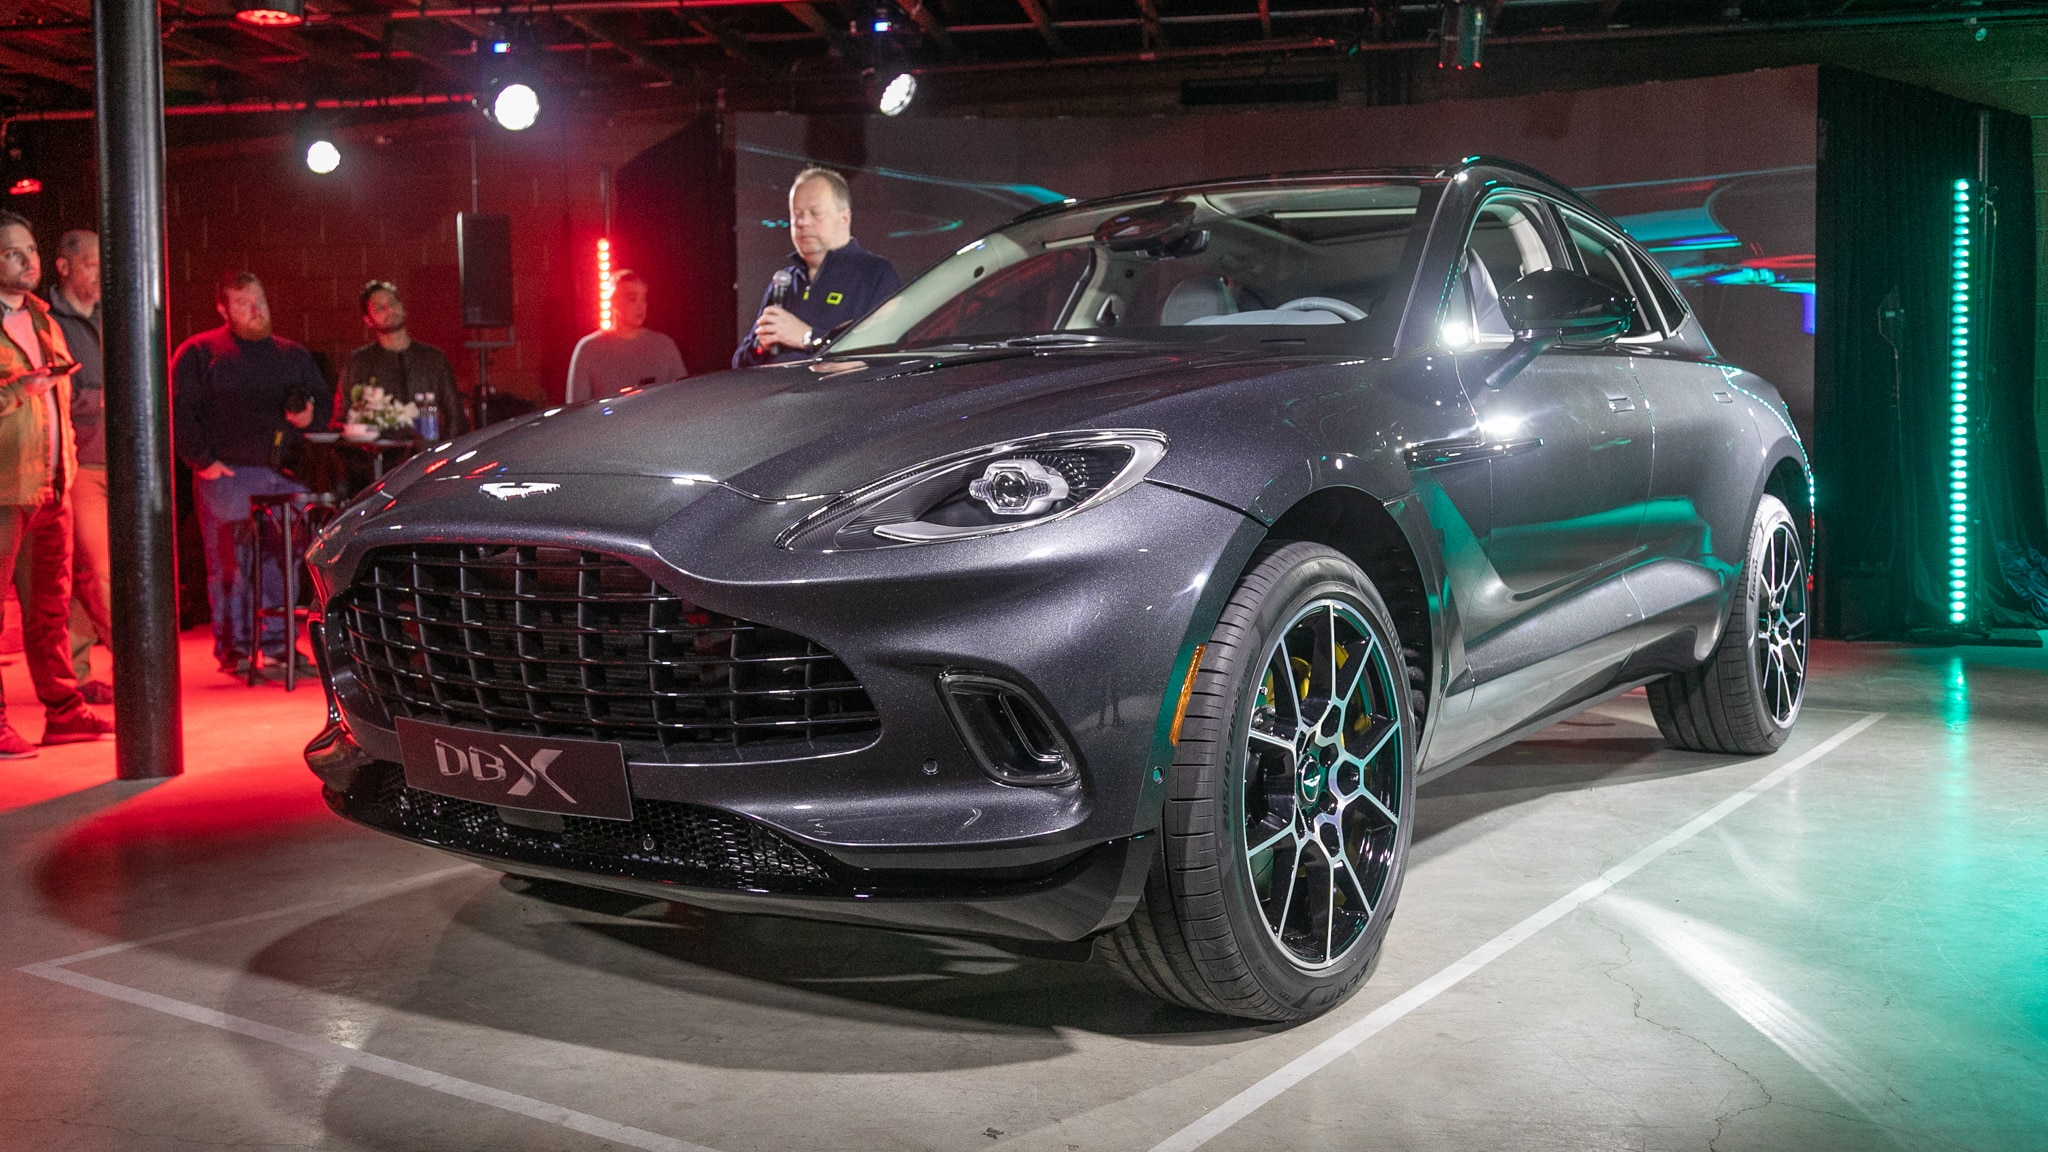 2021 Aston Martin Dbx Suv First Look Price Specs And Every Detail